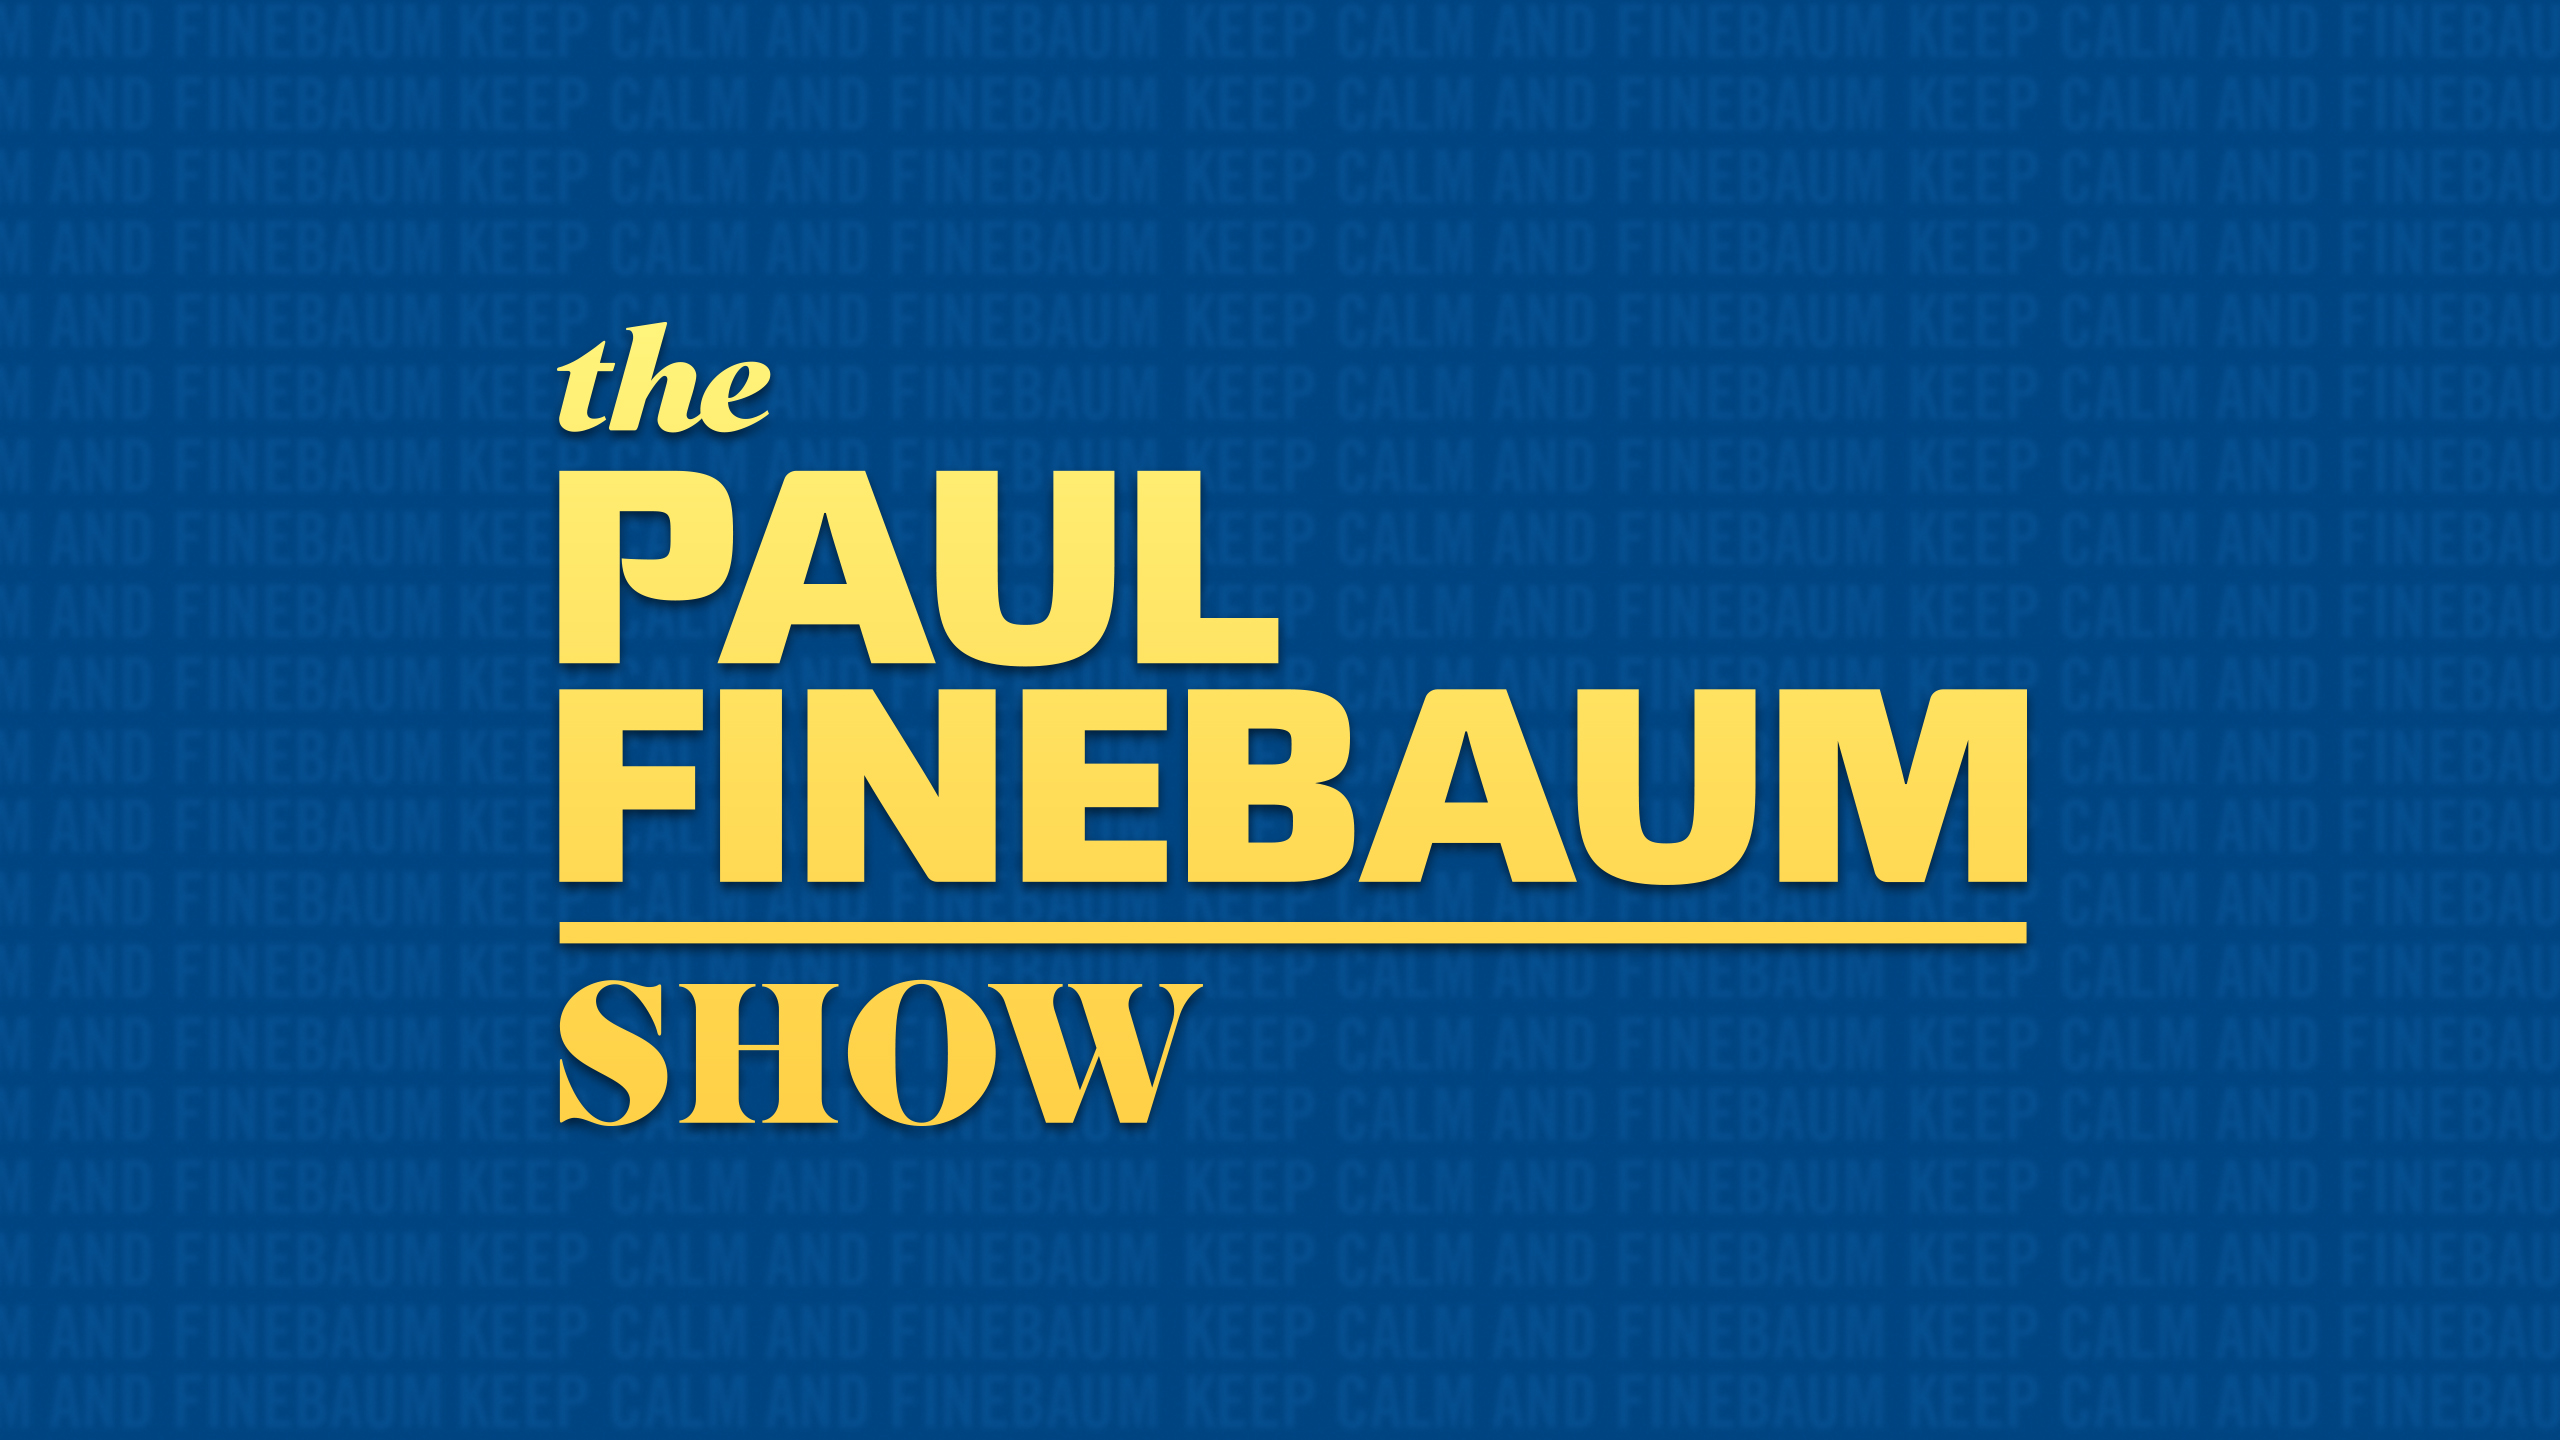 Thu, 10/18 - The Paul Finebaum Show Presented by Pilot Flying J